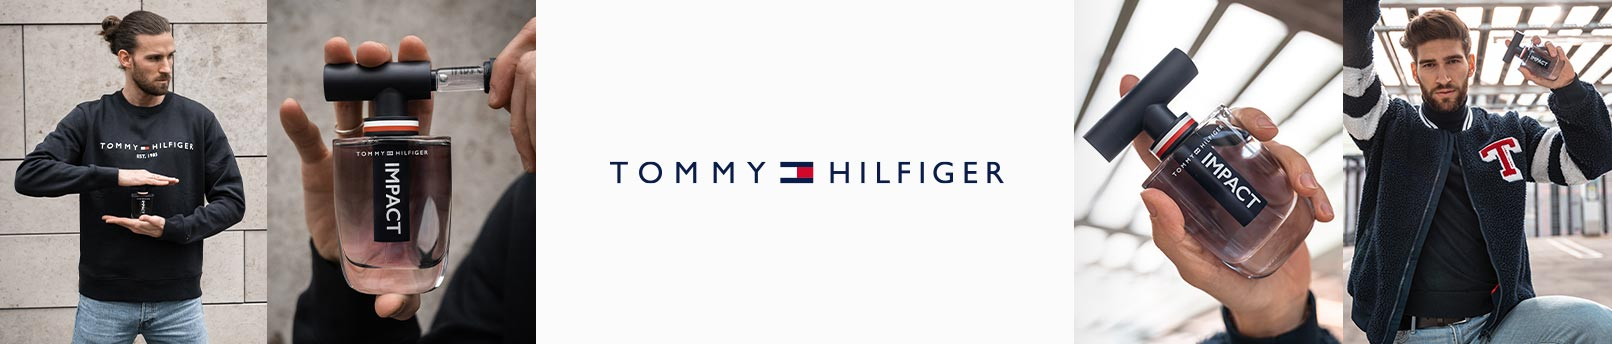 Tommy Hilfiger IMPACT